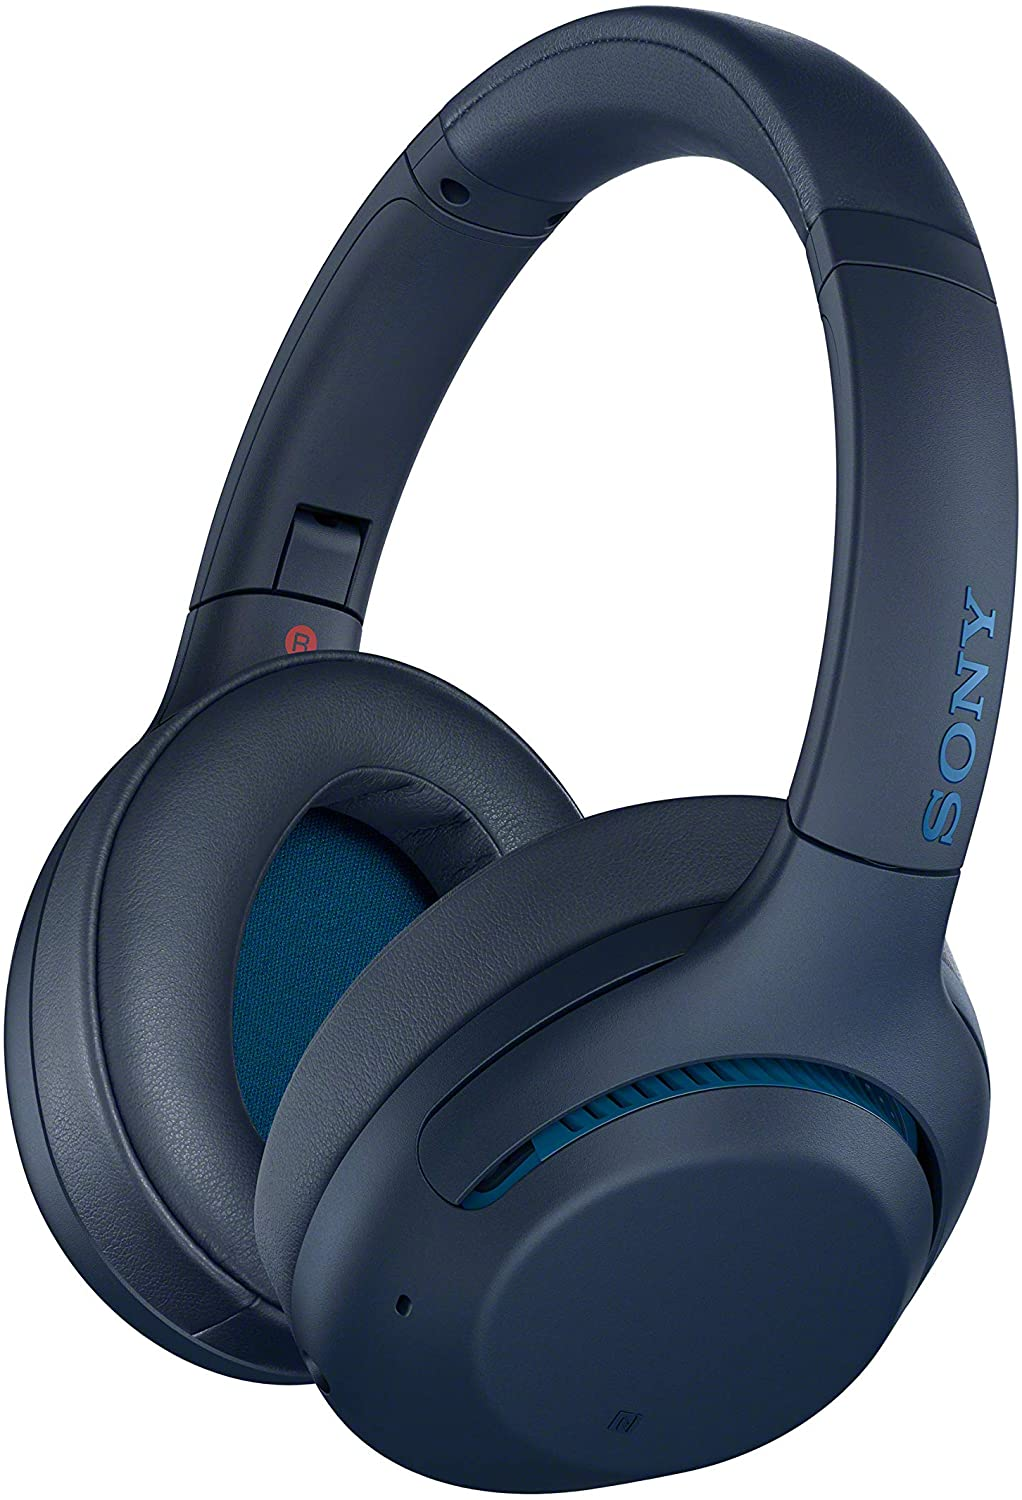 Sony Noise Cancelling Headphones WHXB900N: Wireless Bluetooth Over the Ear Headset with Mic for phone-call and Alexa voice control - Blue (Amazon Exclusive), Model Number: WH-XB900N/L